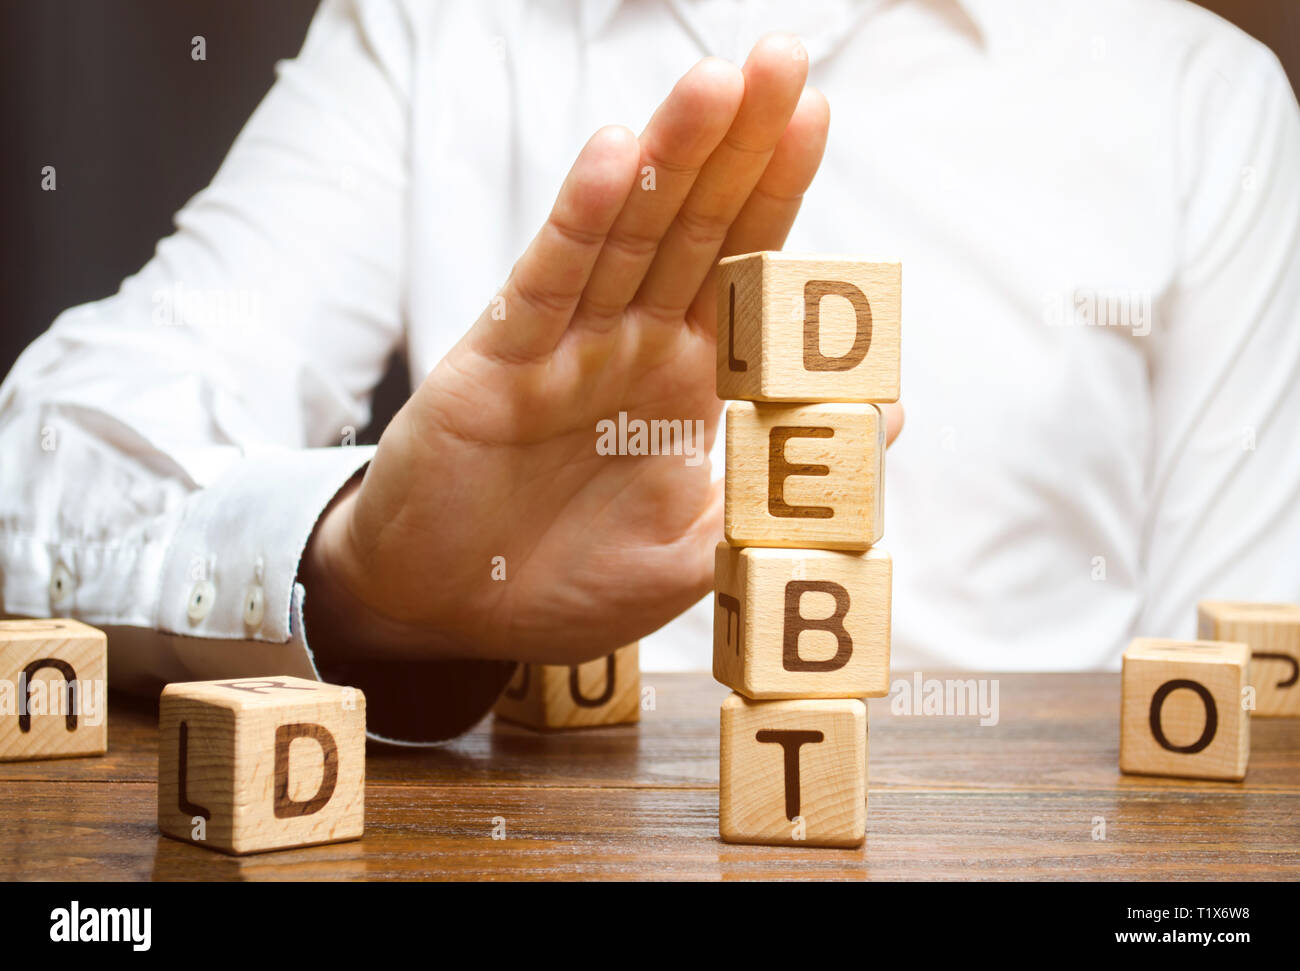 Businessman refuses to take a loan. Refusal of loans with high interest rates. Inability to pay the debt. Unprofitable terms of business lending by ba - Stock Image